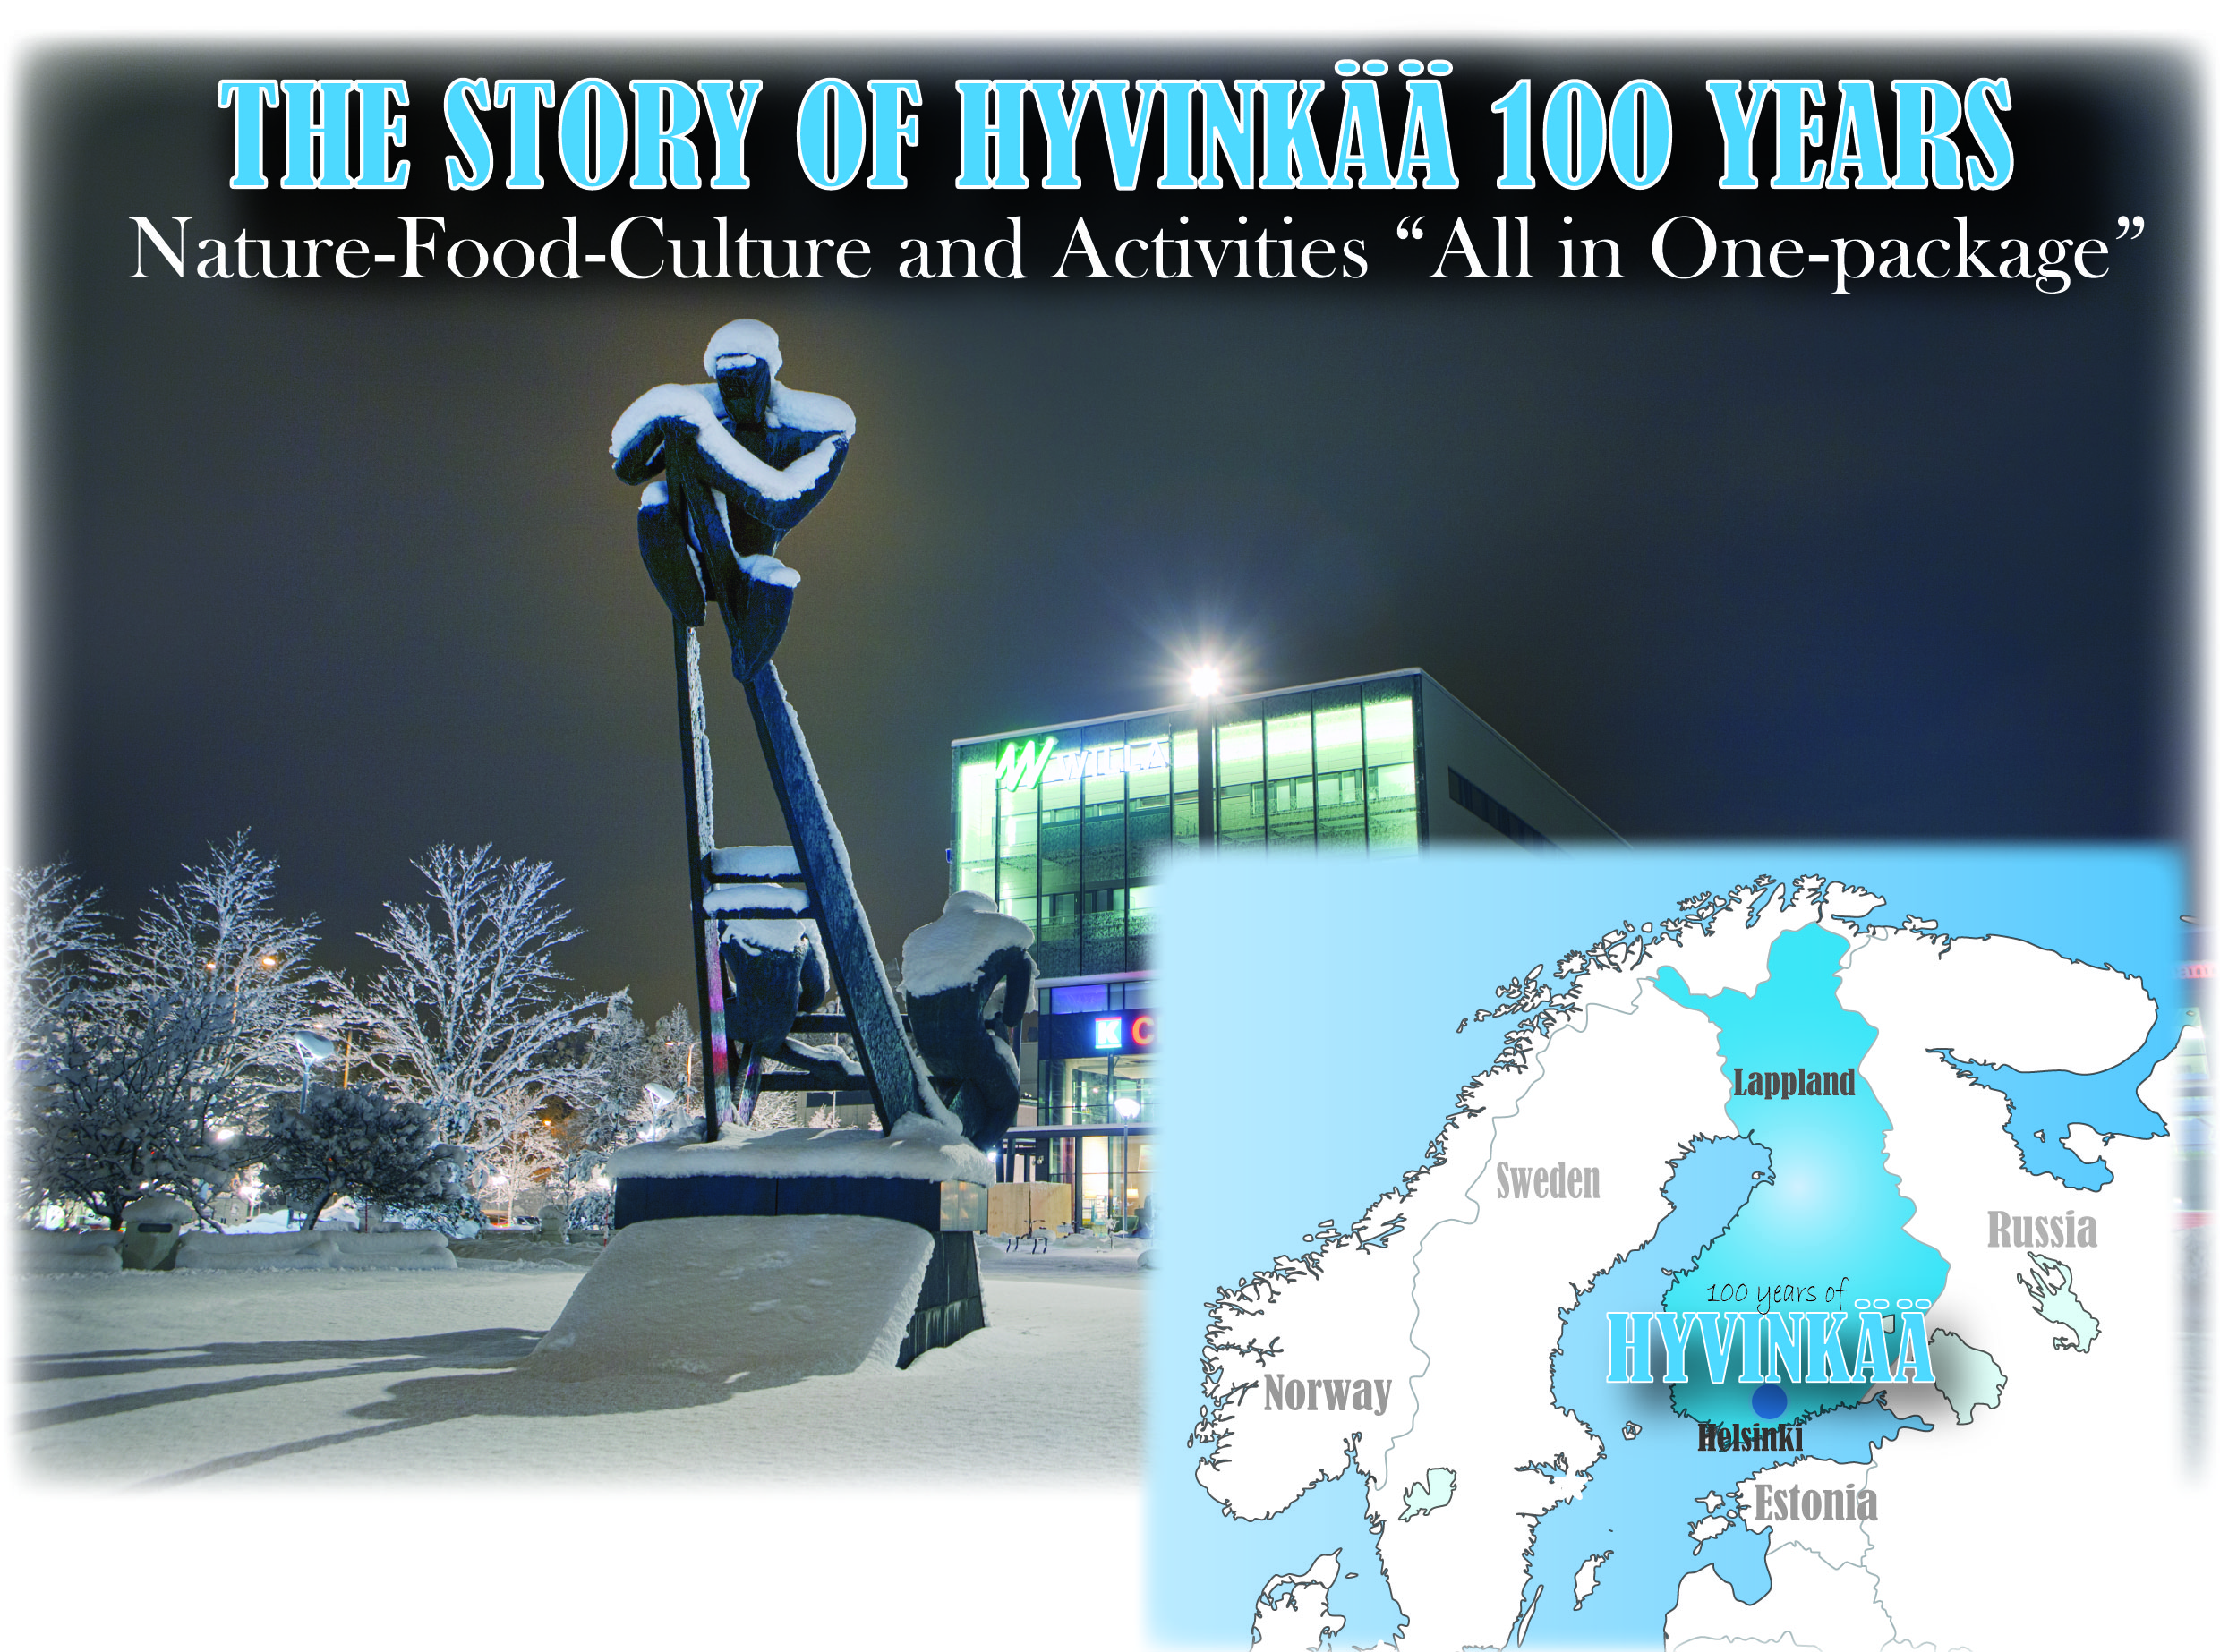 The_Story_of_Hyvinkaa_100_years_-_PRETOUR_2017-01.jpg